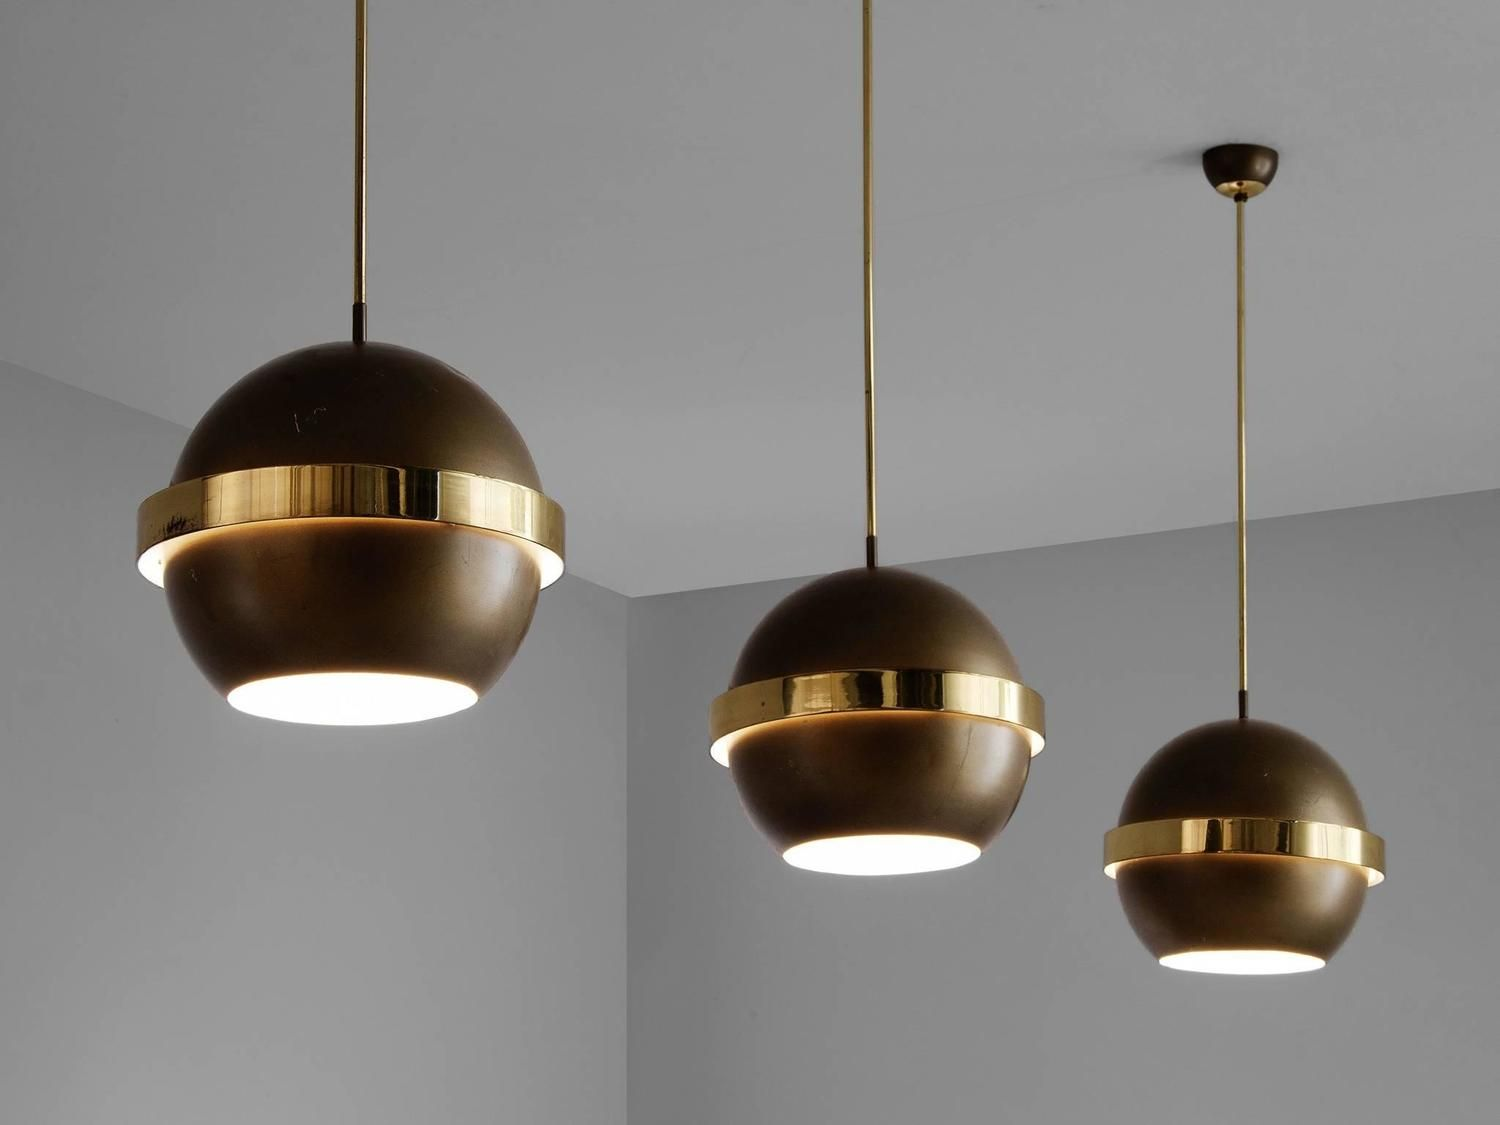 Set Of Three Pendants In Brass Pinterest Third Pendants And - Set of three pendant lights